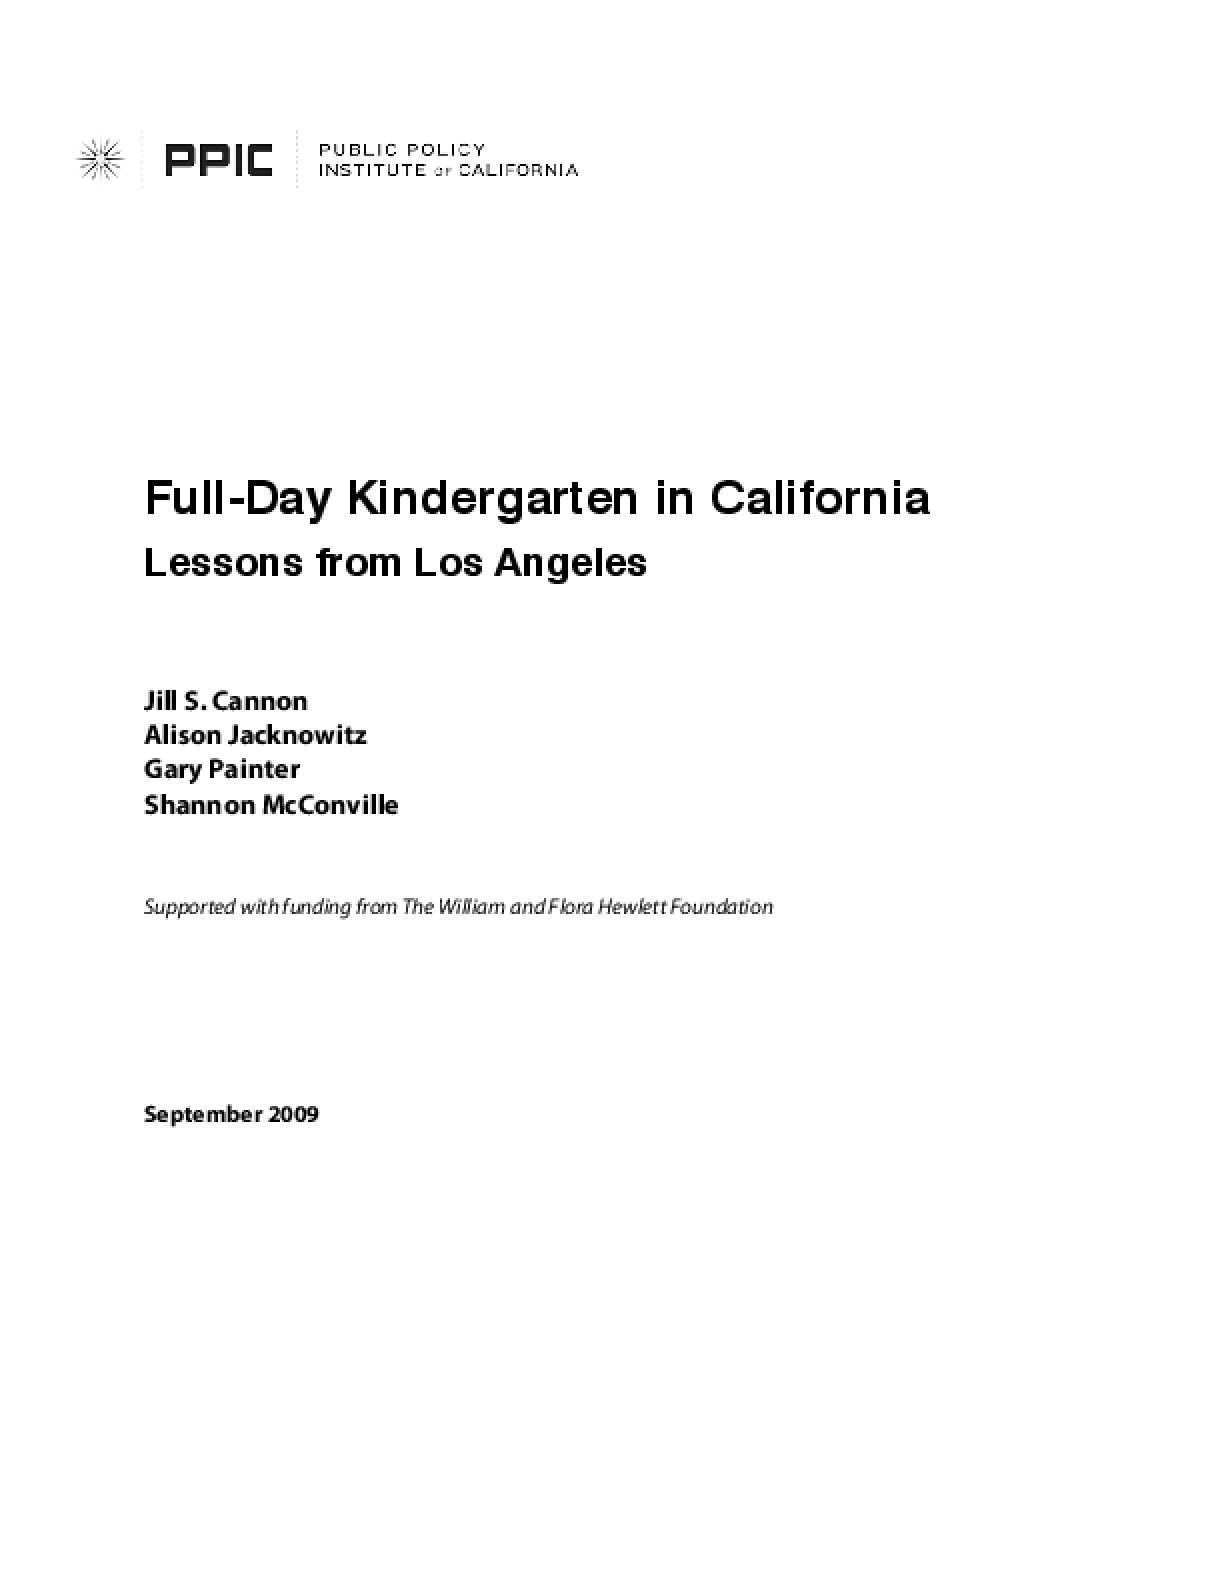 Full-Day Kindergarten in California: Lessons From Los Angeles